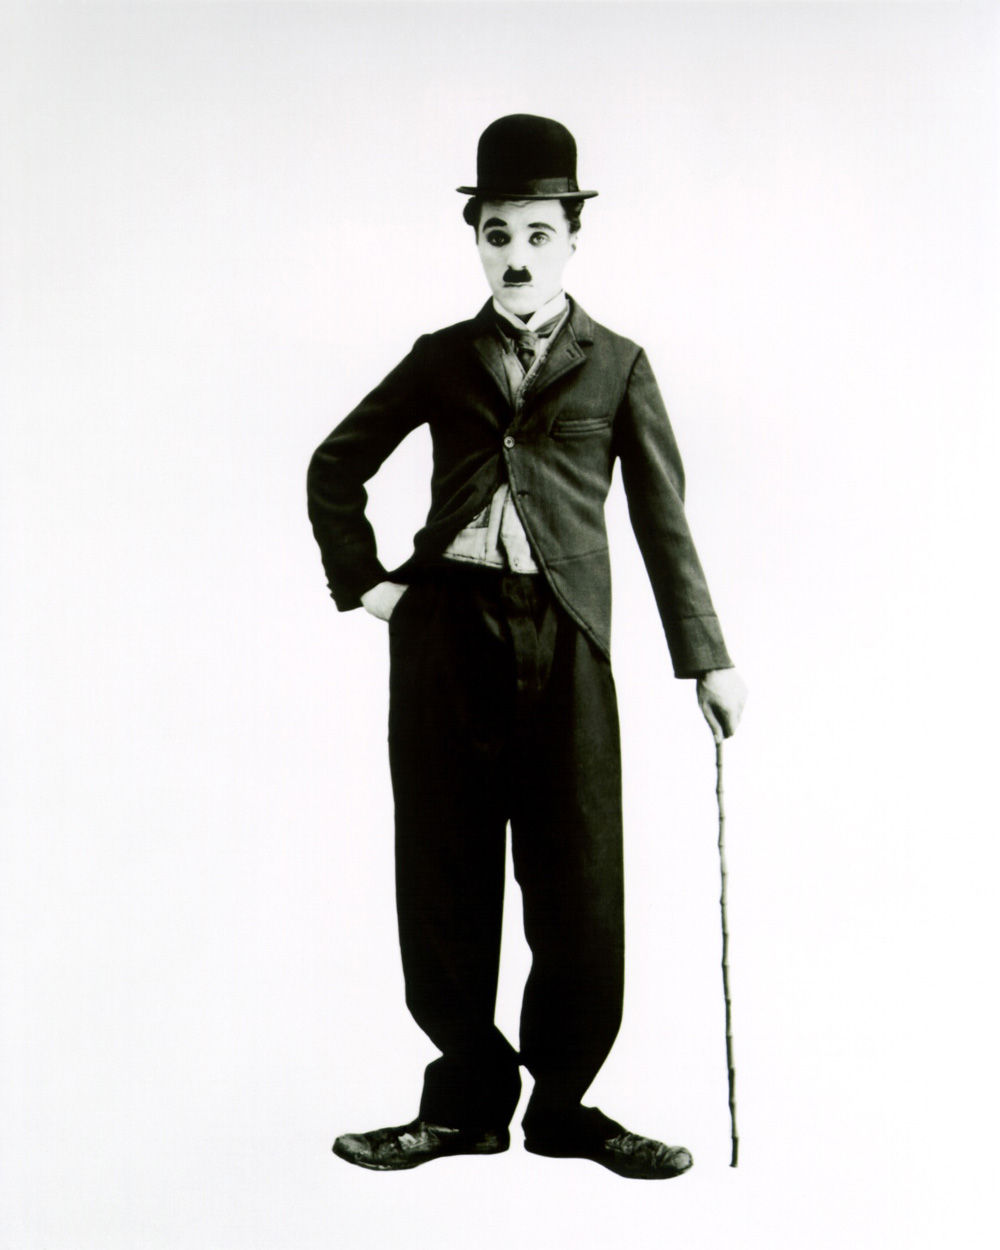 20160401 Charlie Chaplin Google image labeled for reuse